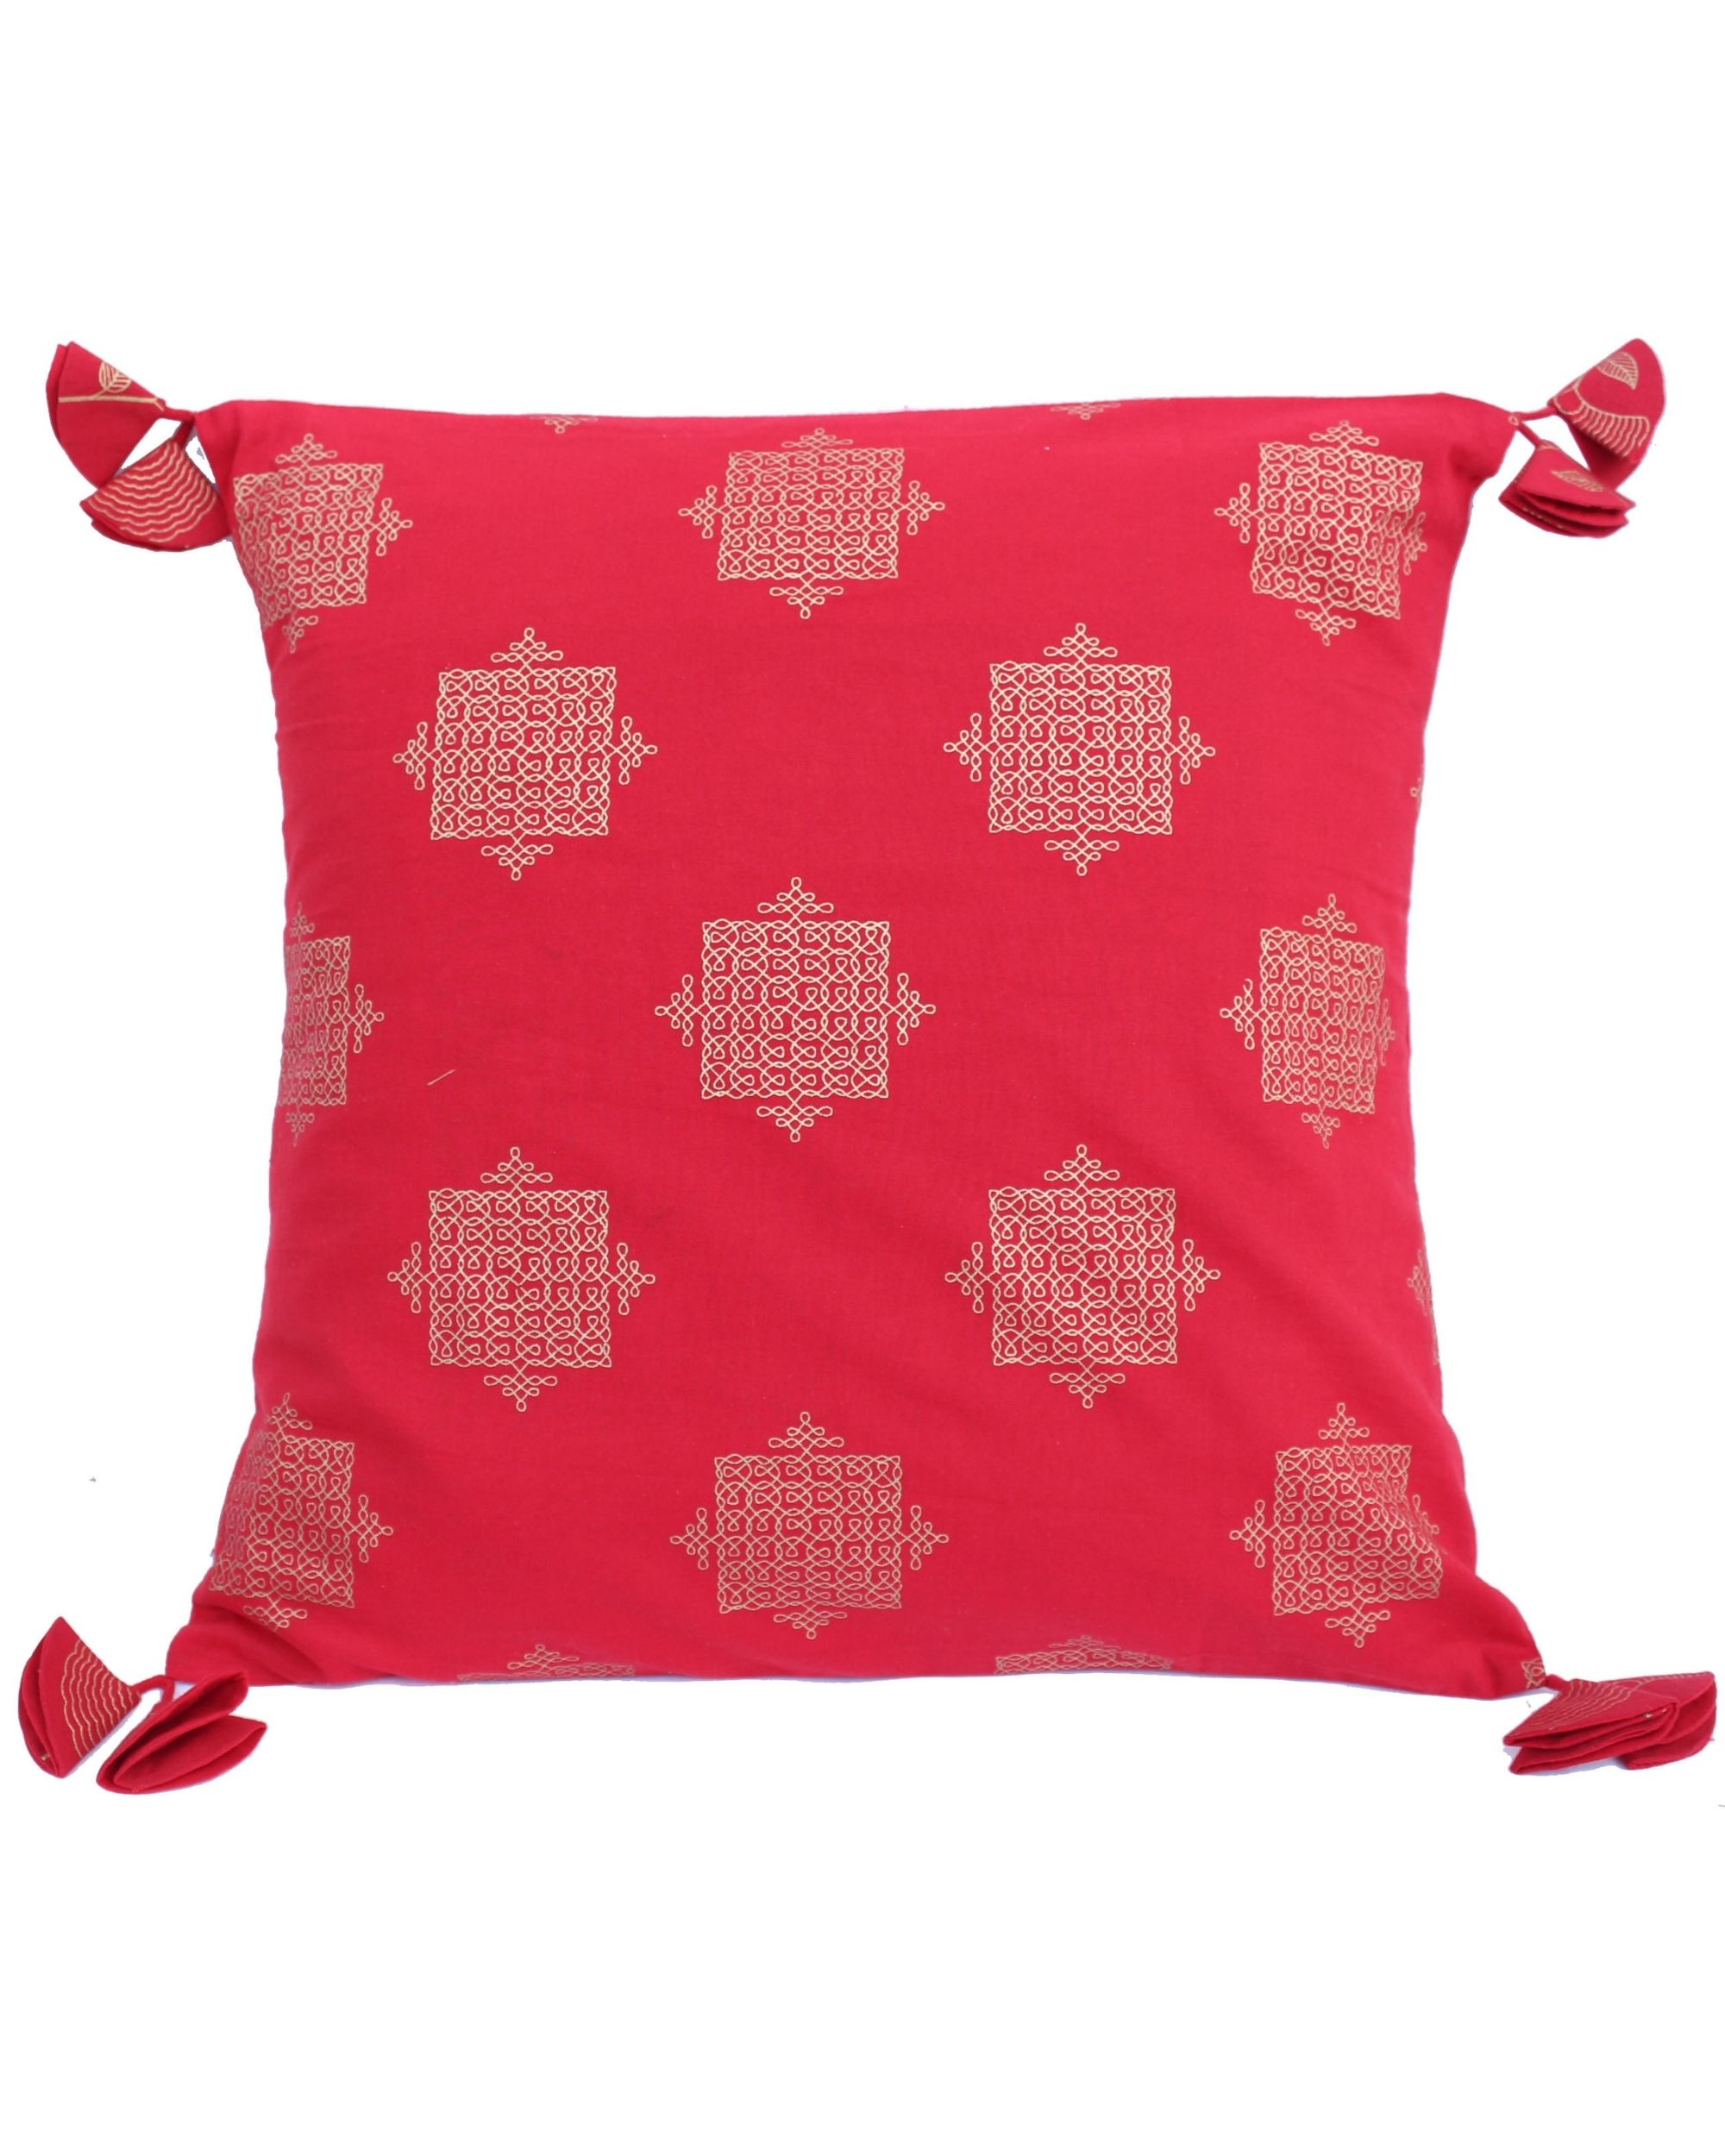 Red and golden jaali printed cushion cover - set of two (large)